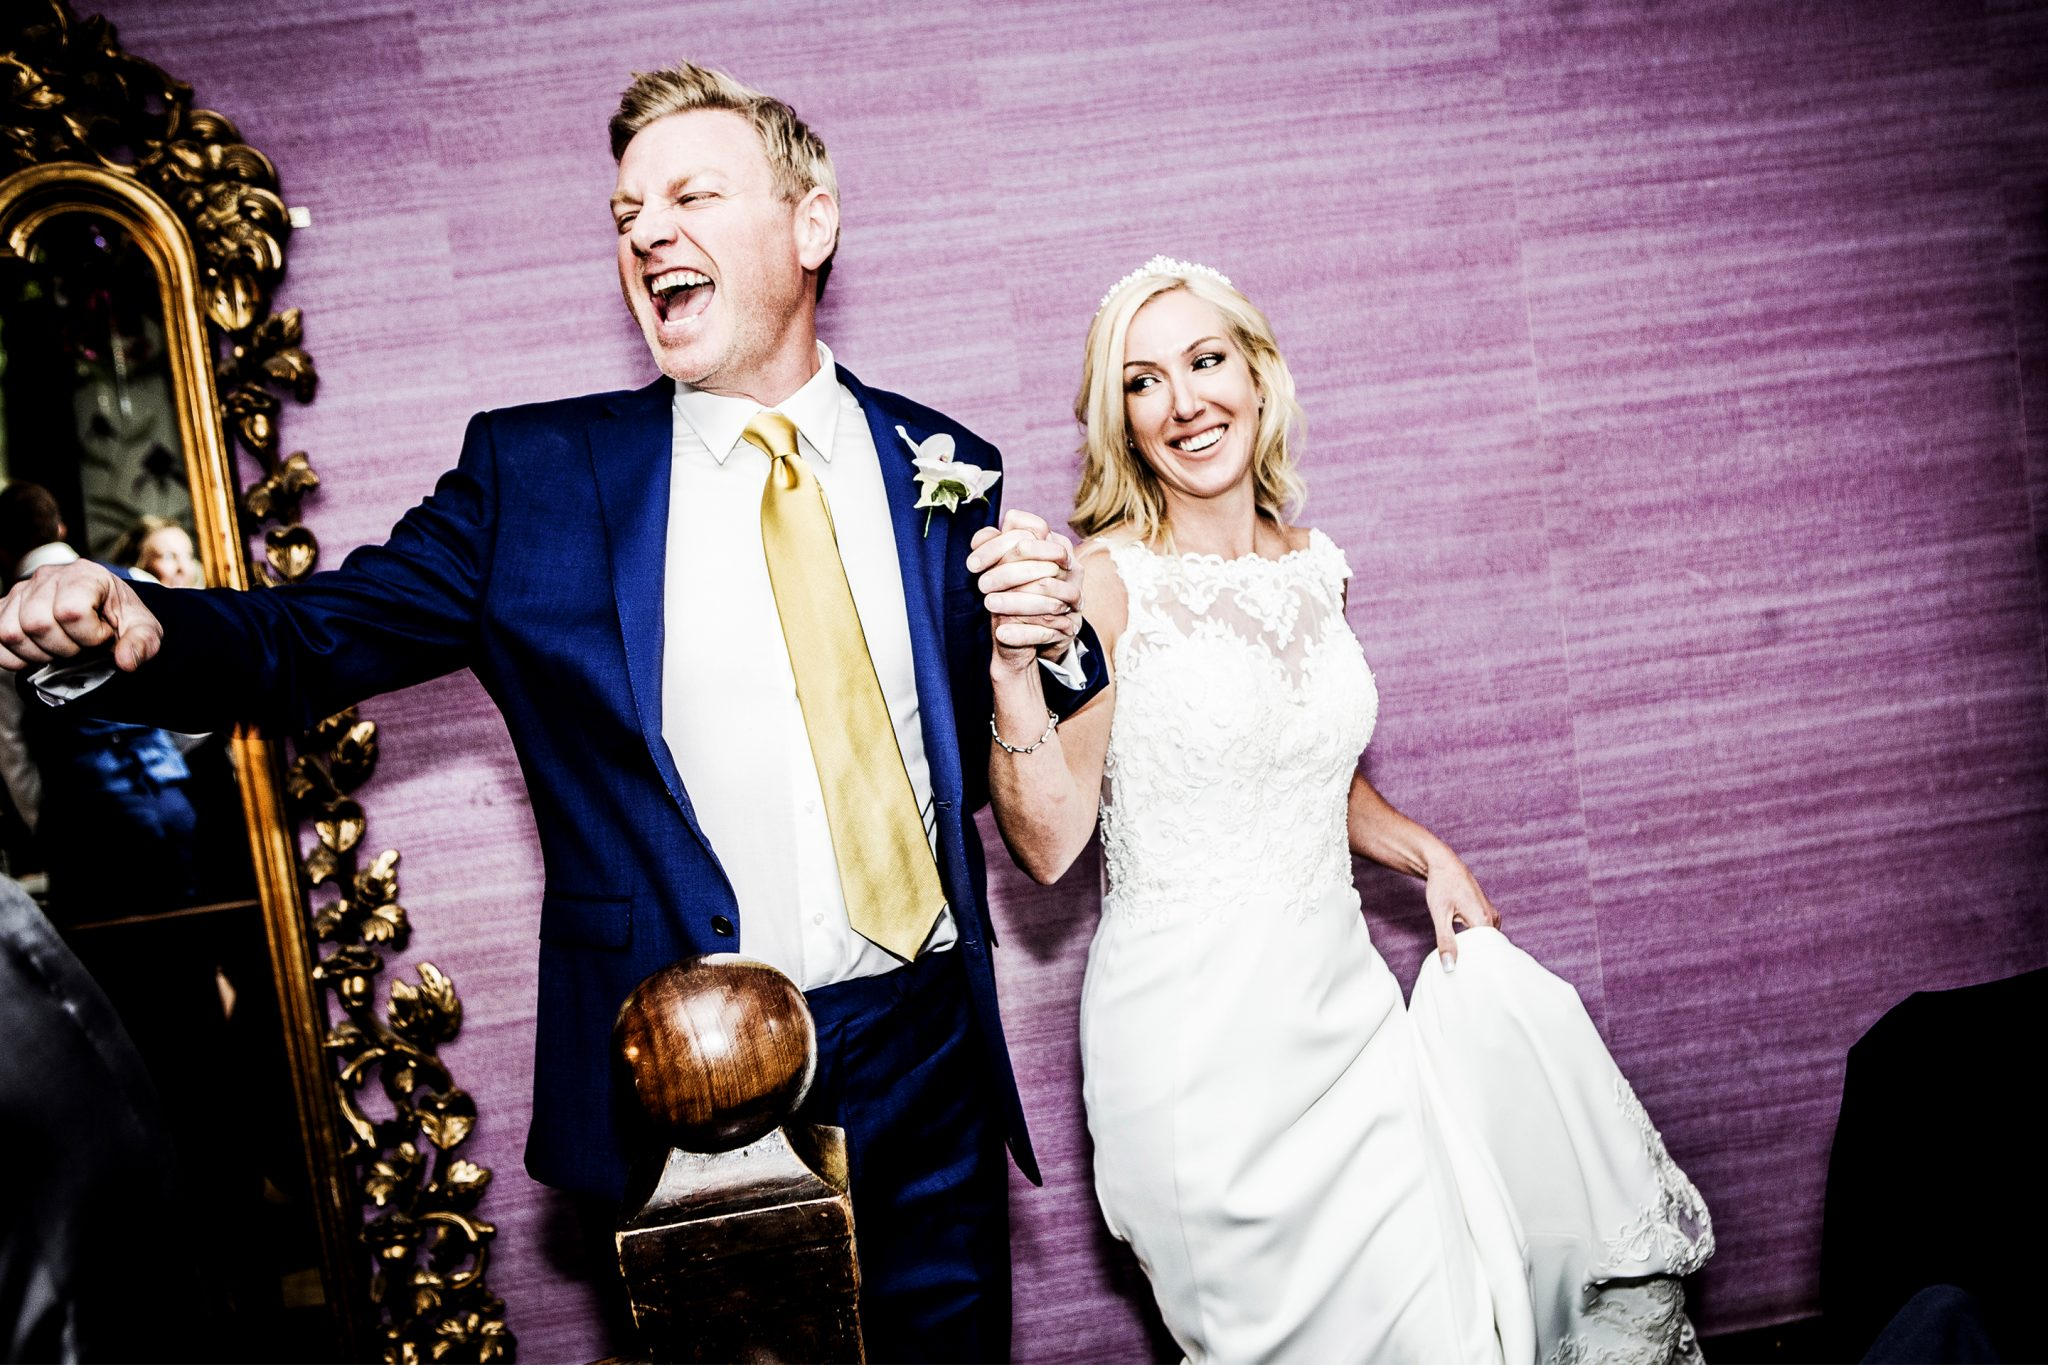 wedding-photography-at-the-belle-epoque-hotel-in-knutsford-cheshire